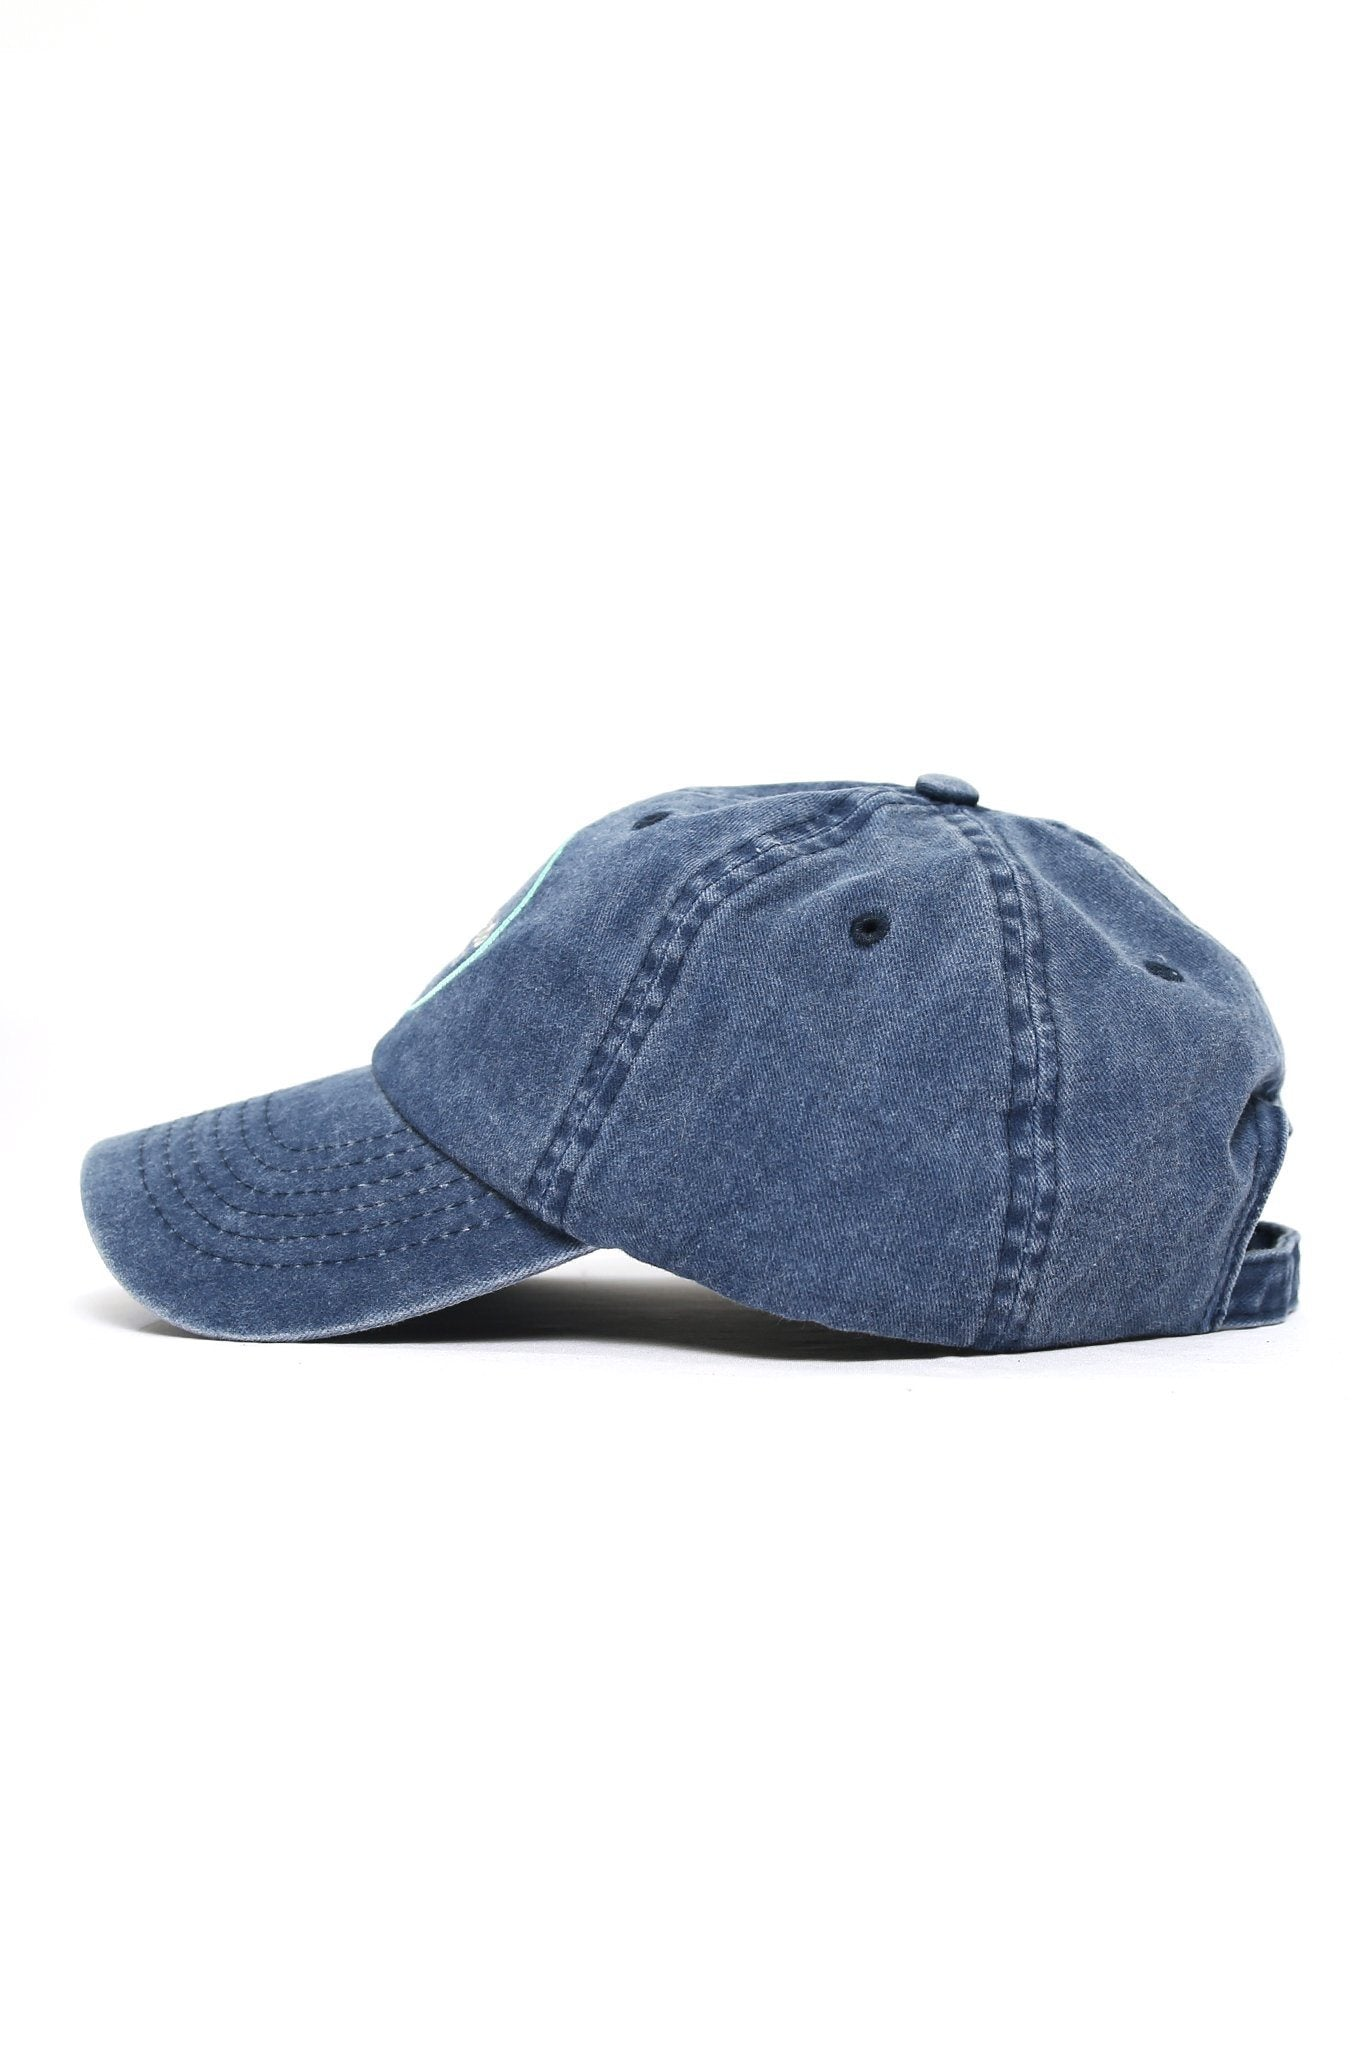 Coast to Coast Embroidered Cap - Denim - Shore